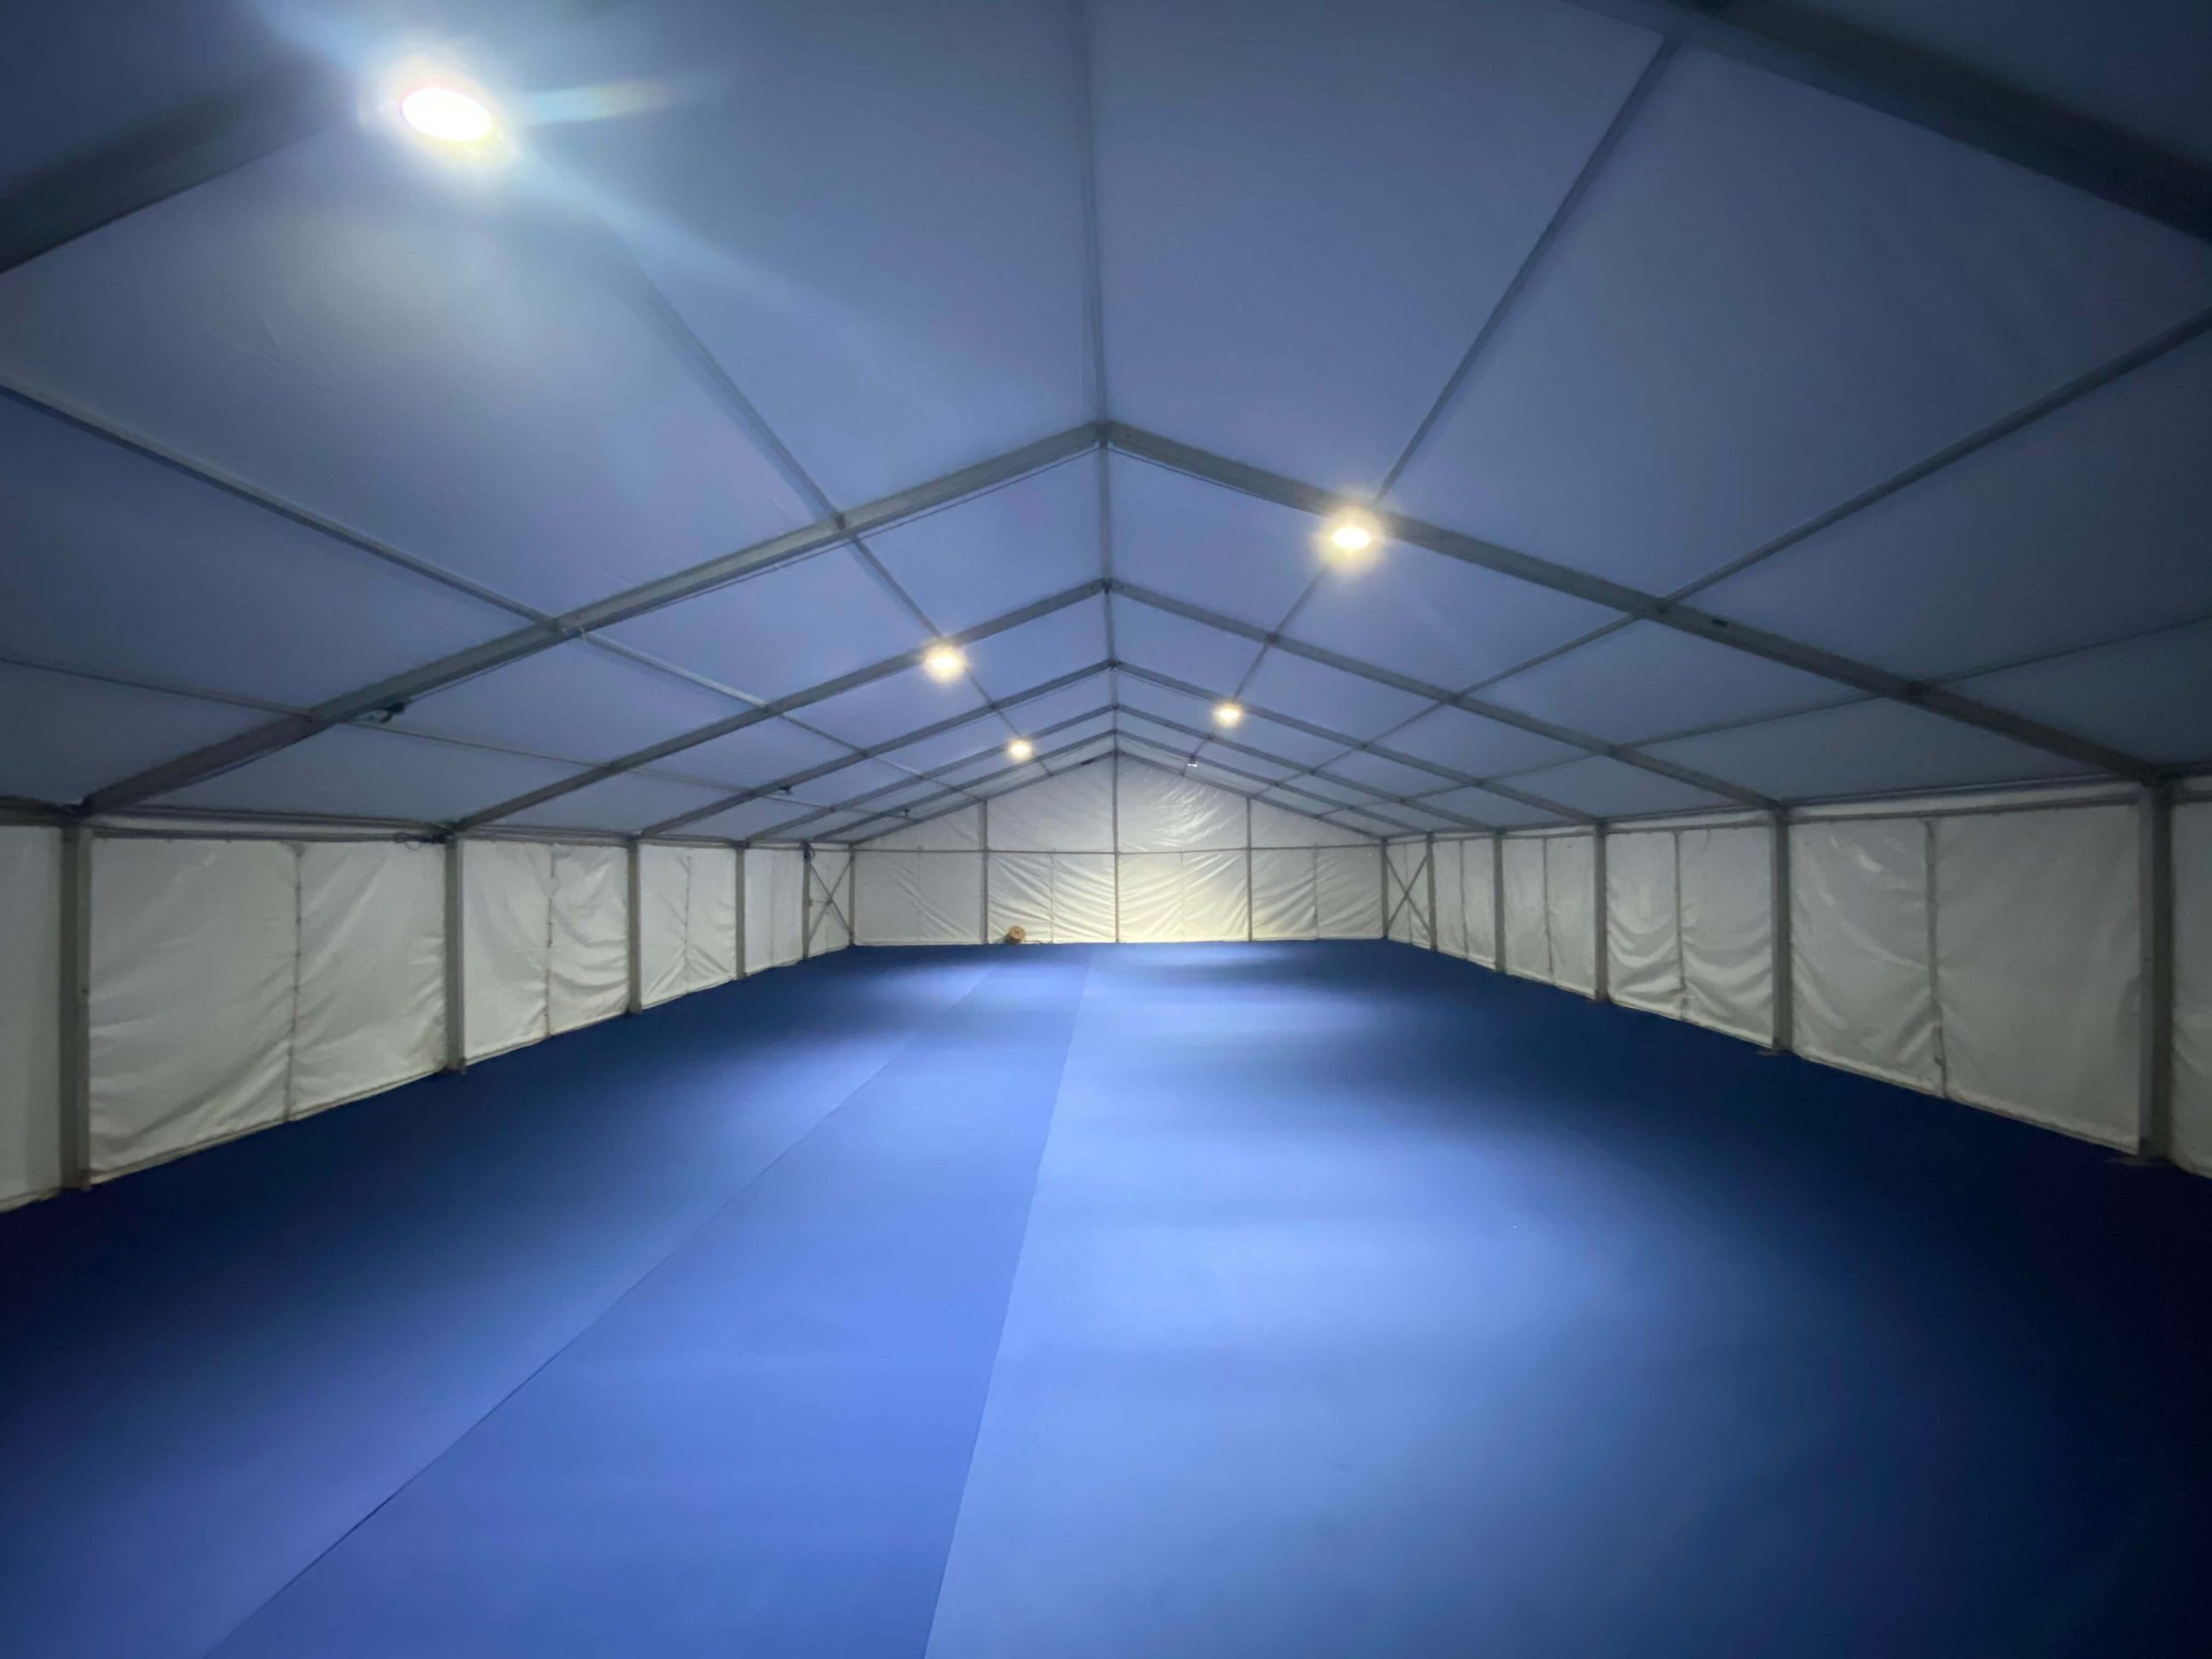 Inside the marquee structure